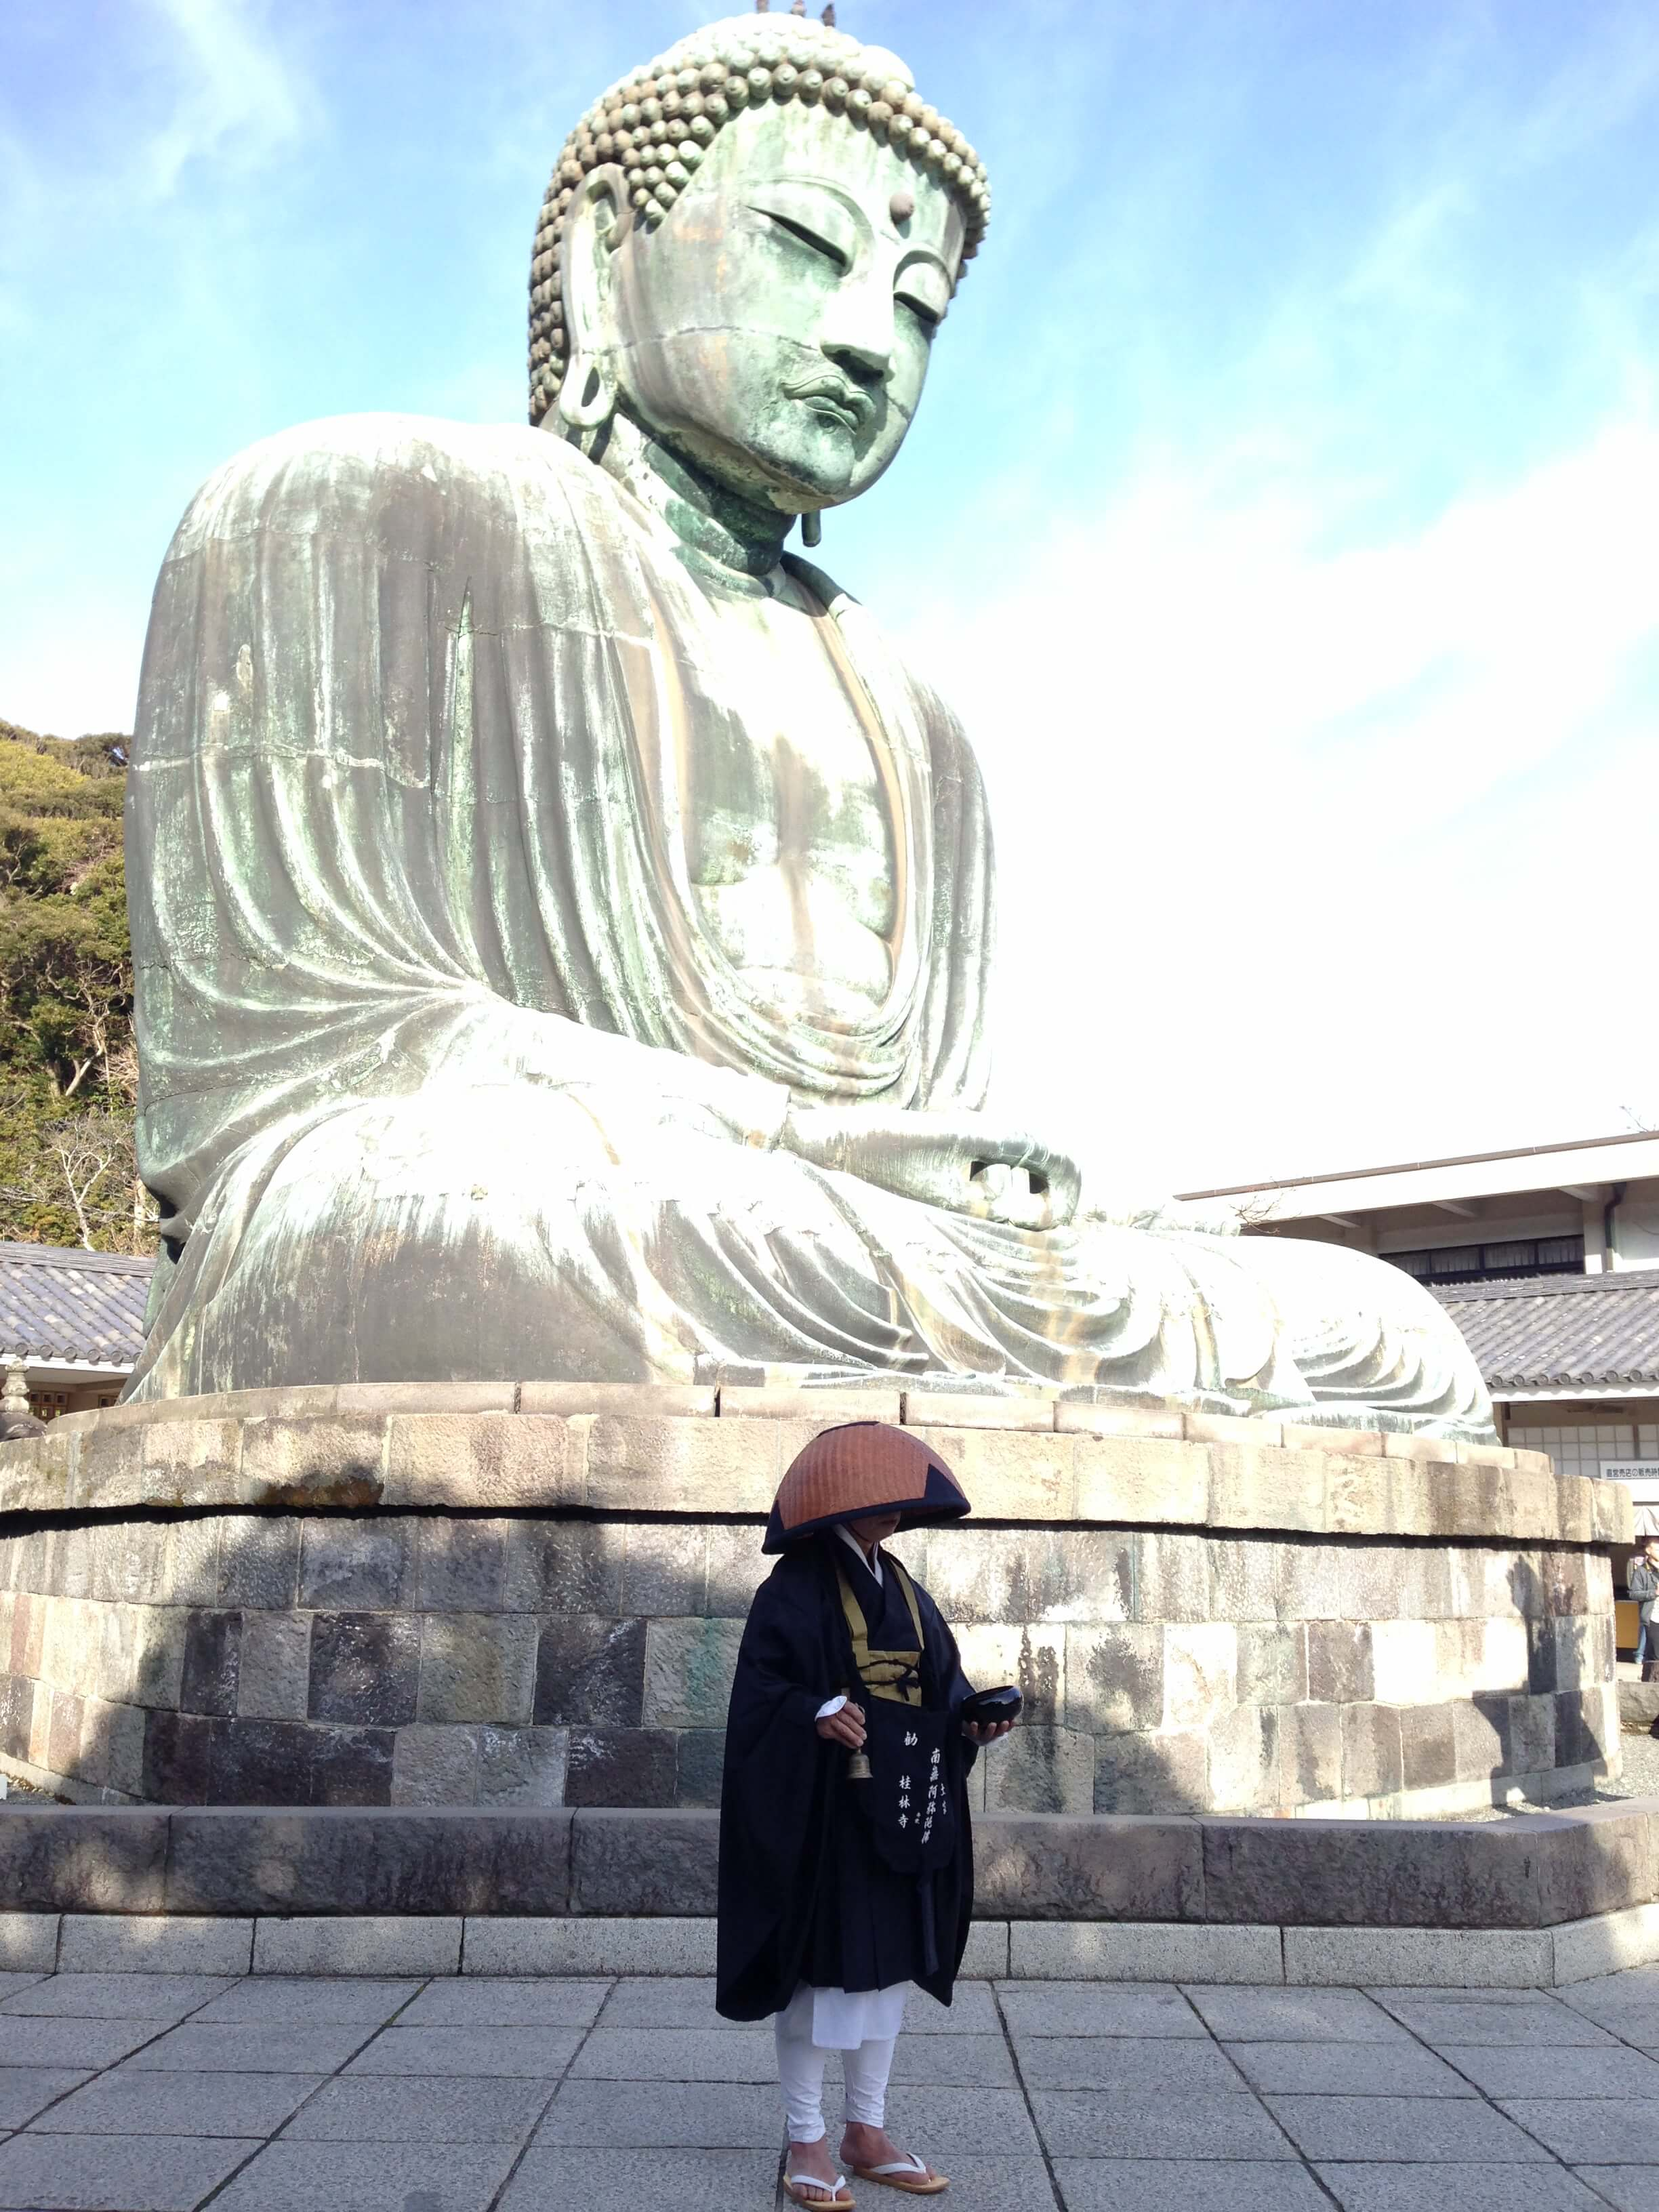 Great Buddha in Kamakura, Japan. I explored this area with a fellow solo traveler I met along the way.